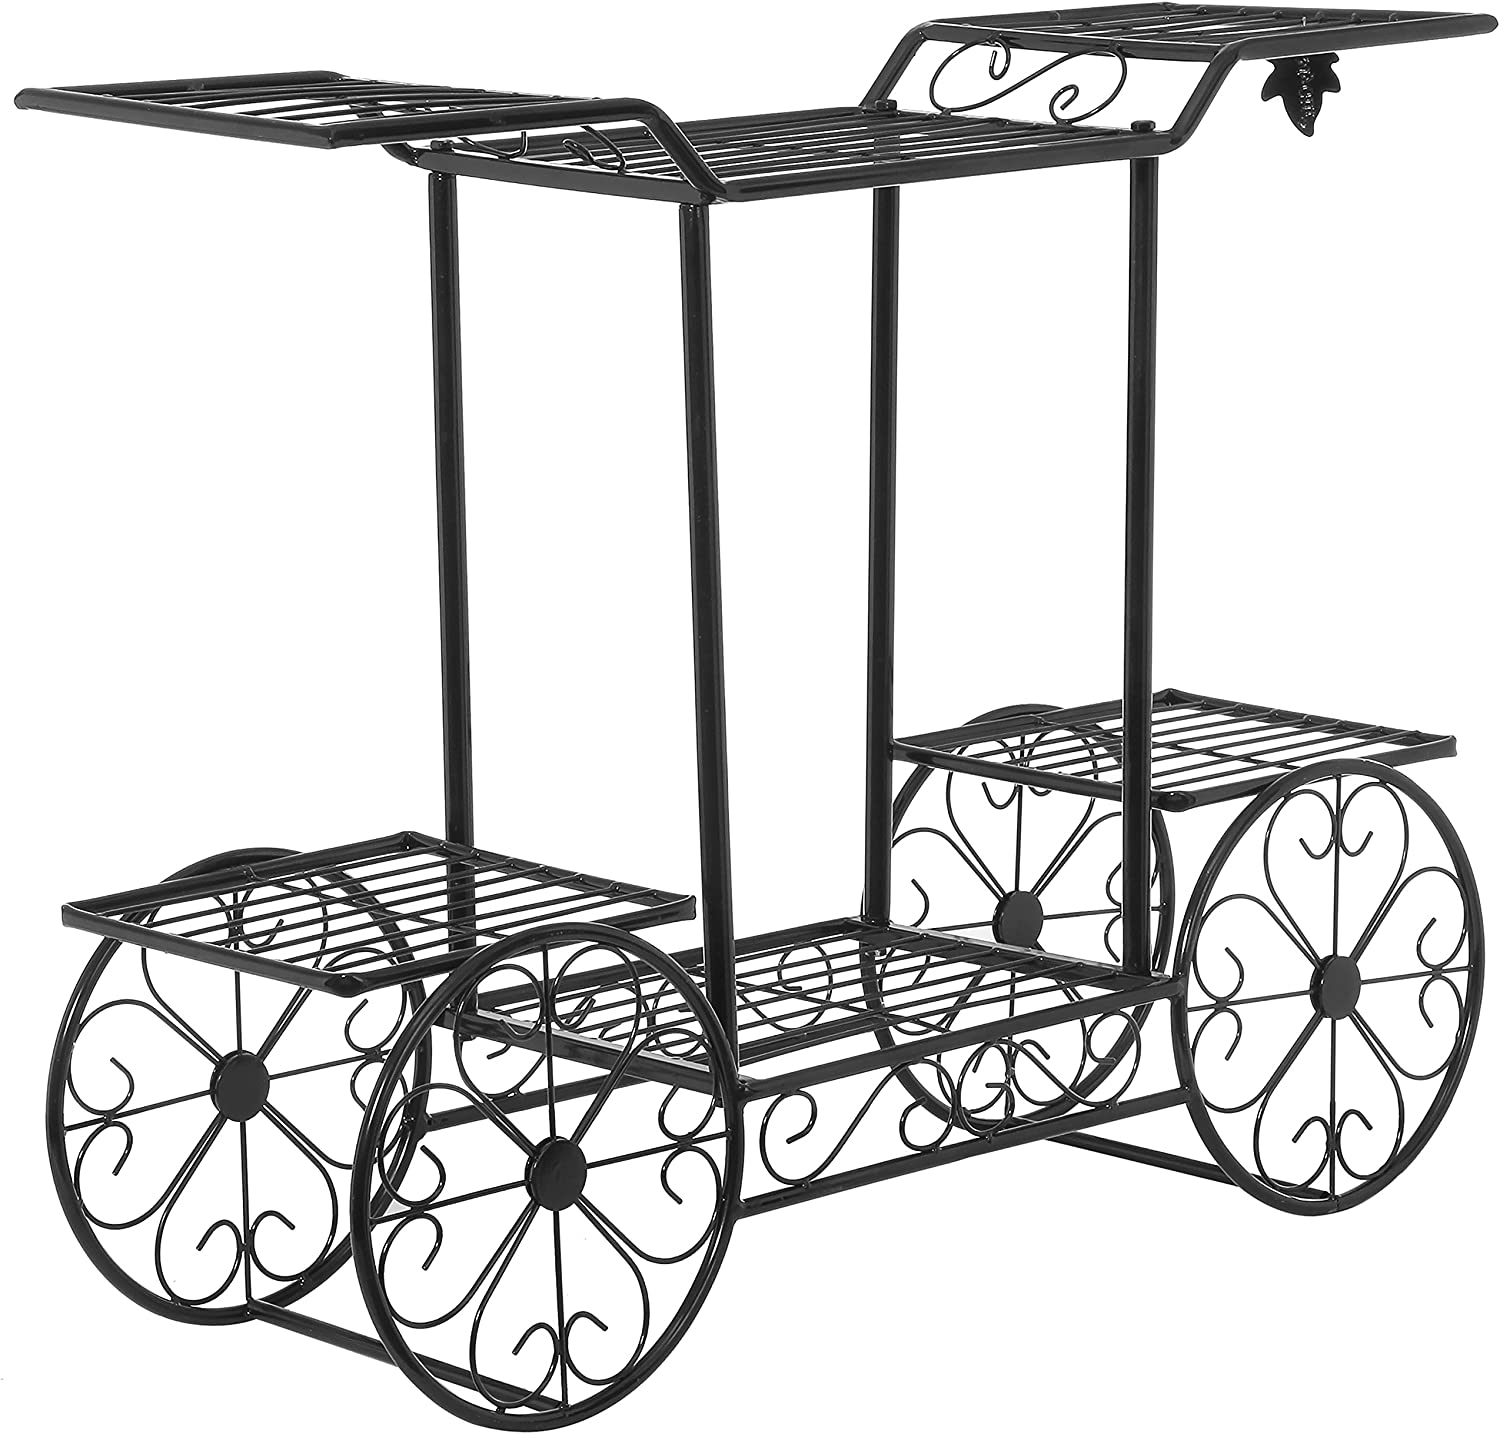 Black Metal 6-Tier Garden Cart Planter Stand, Flower Pot Display Rack